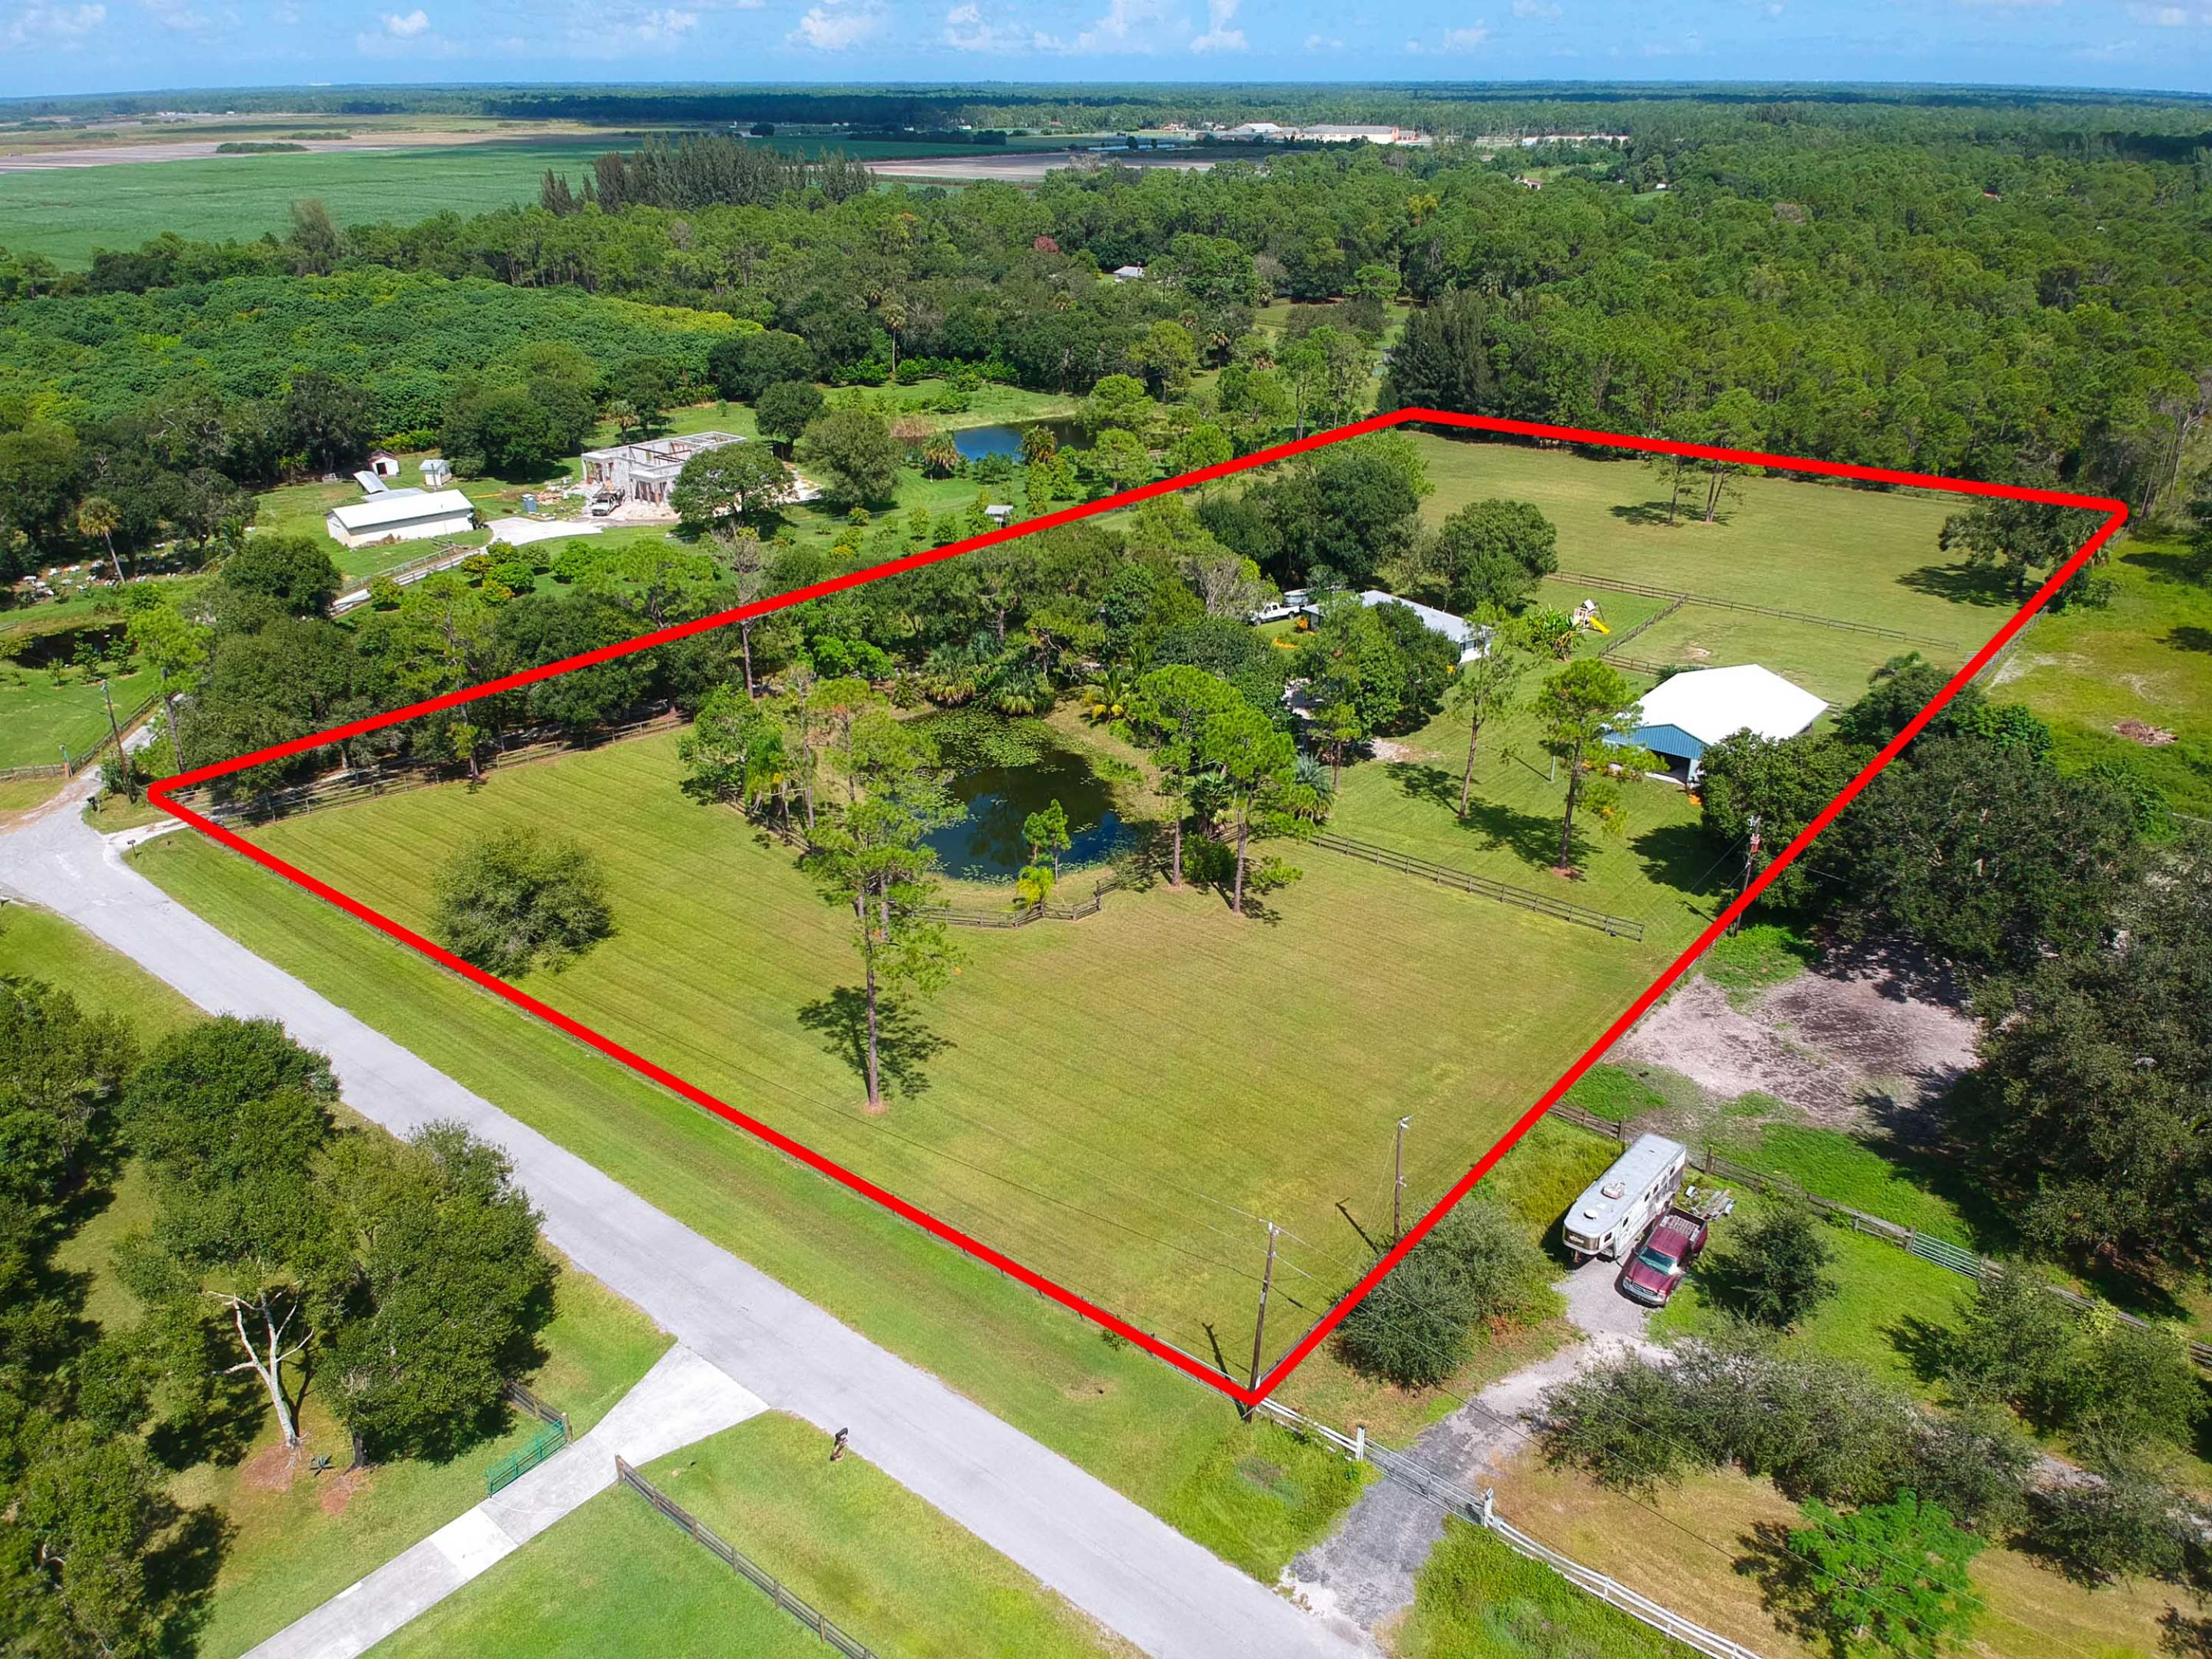 6296 188th Trail, Loxahatchee, Florida 33470, 3 Bedrooms Bedrooms, ,2 BathroomsBathrooms,Single Family,For Sale,188th,RX-10465078